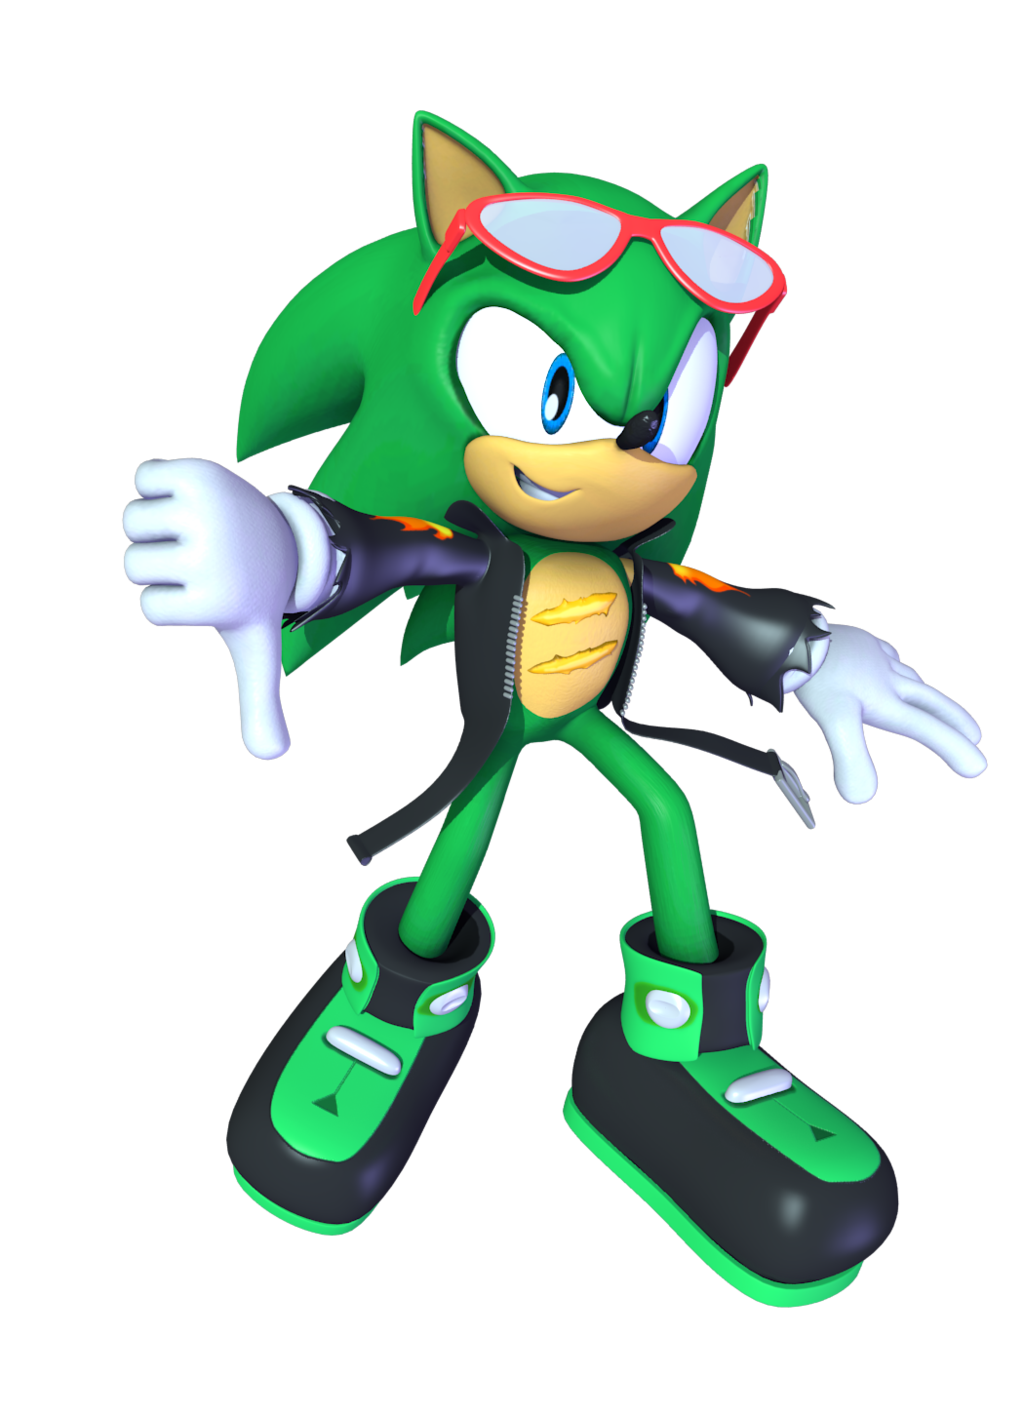 A 3D render of Scourge the Hedgehog but his scars are the wrong way xD